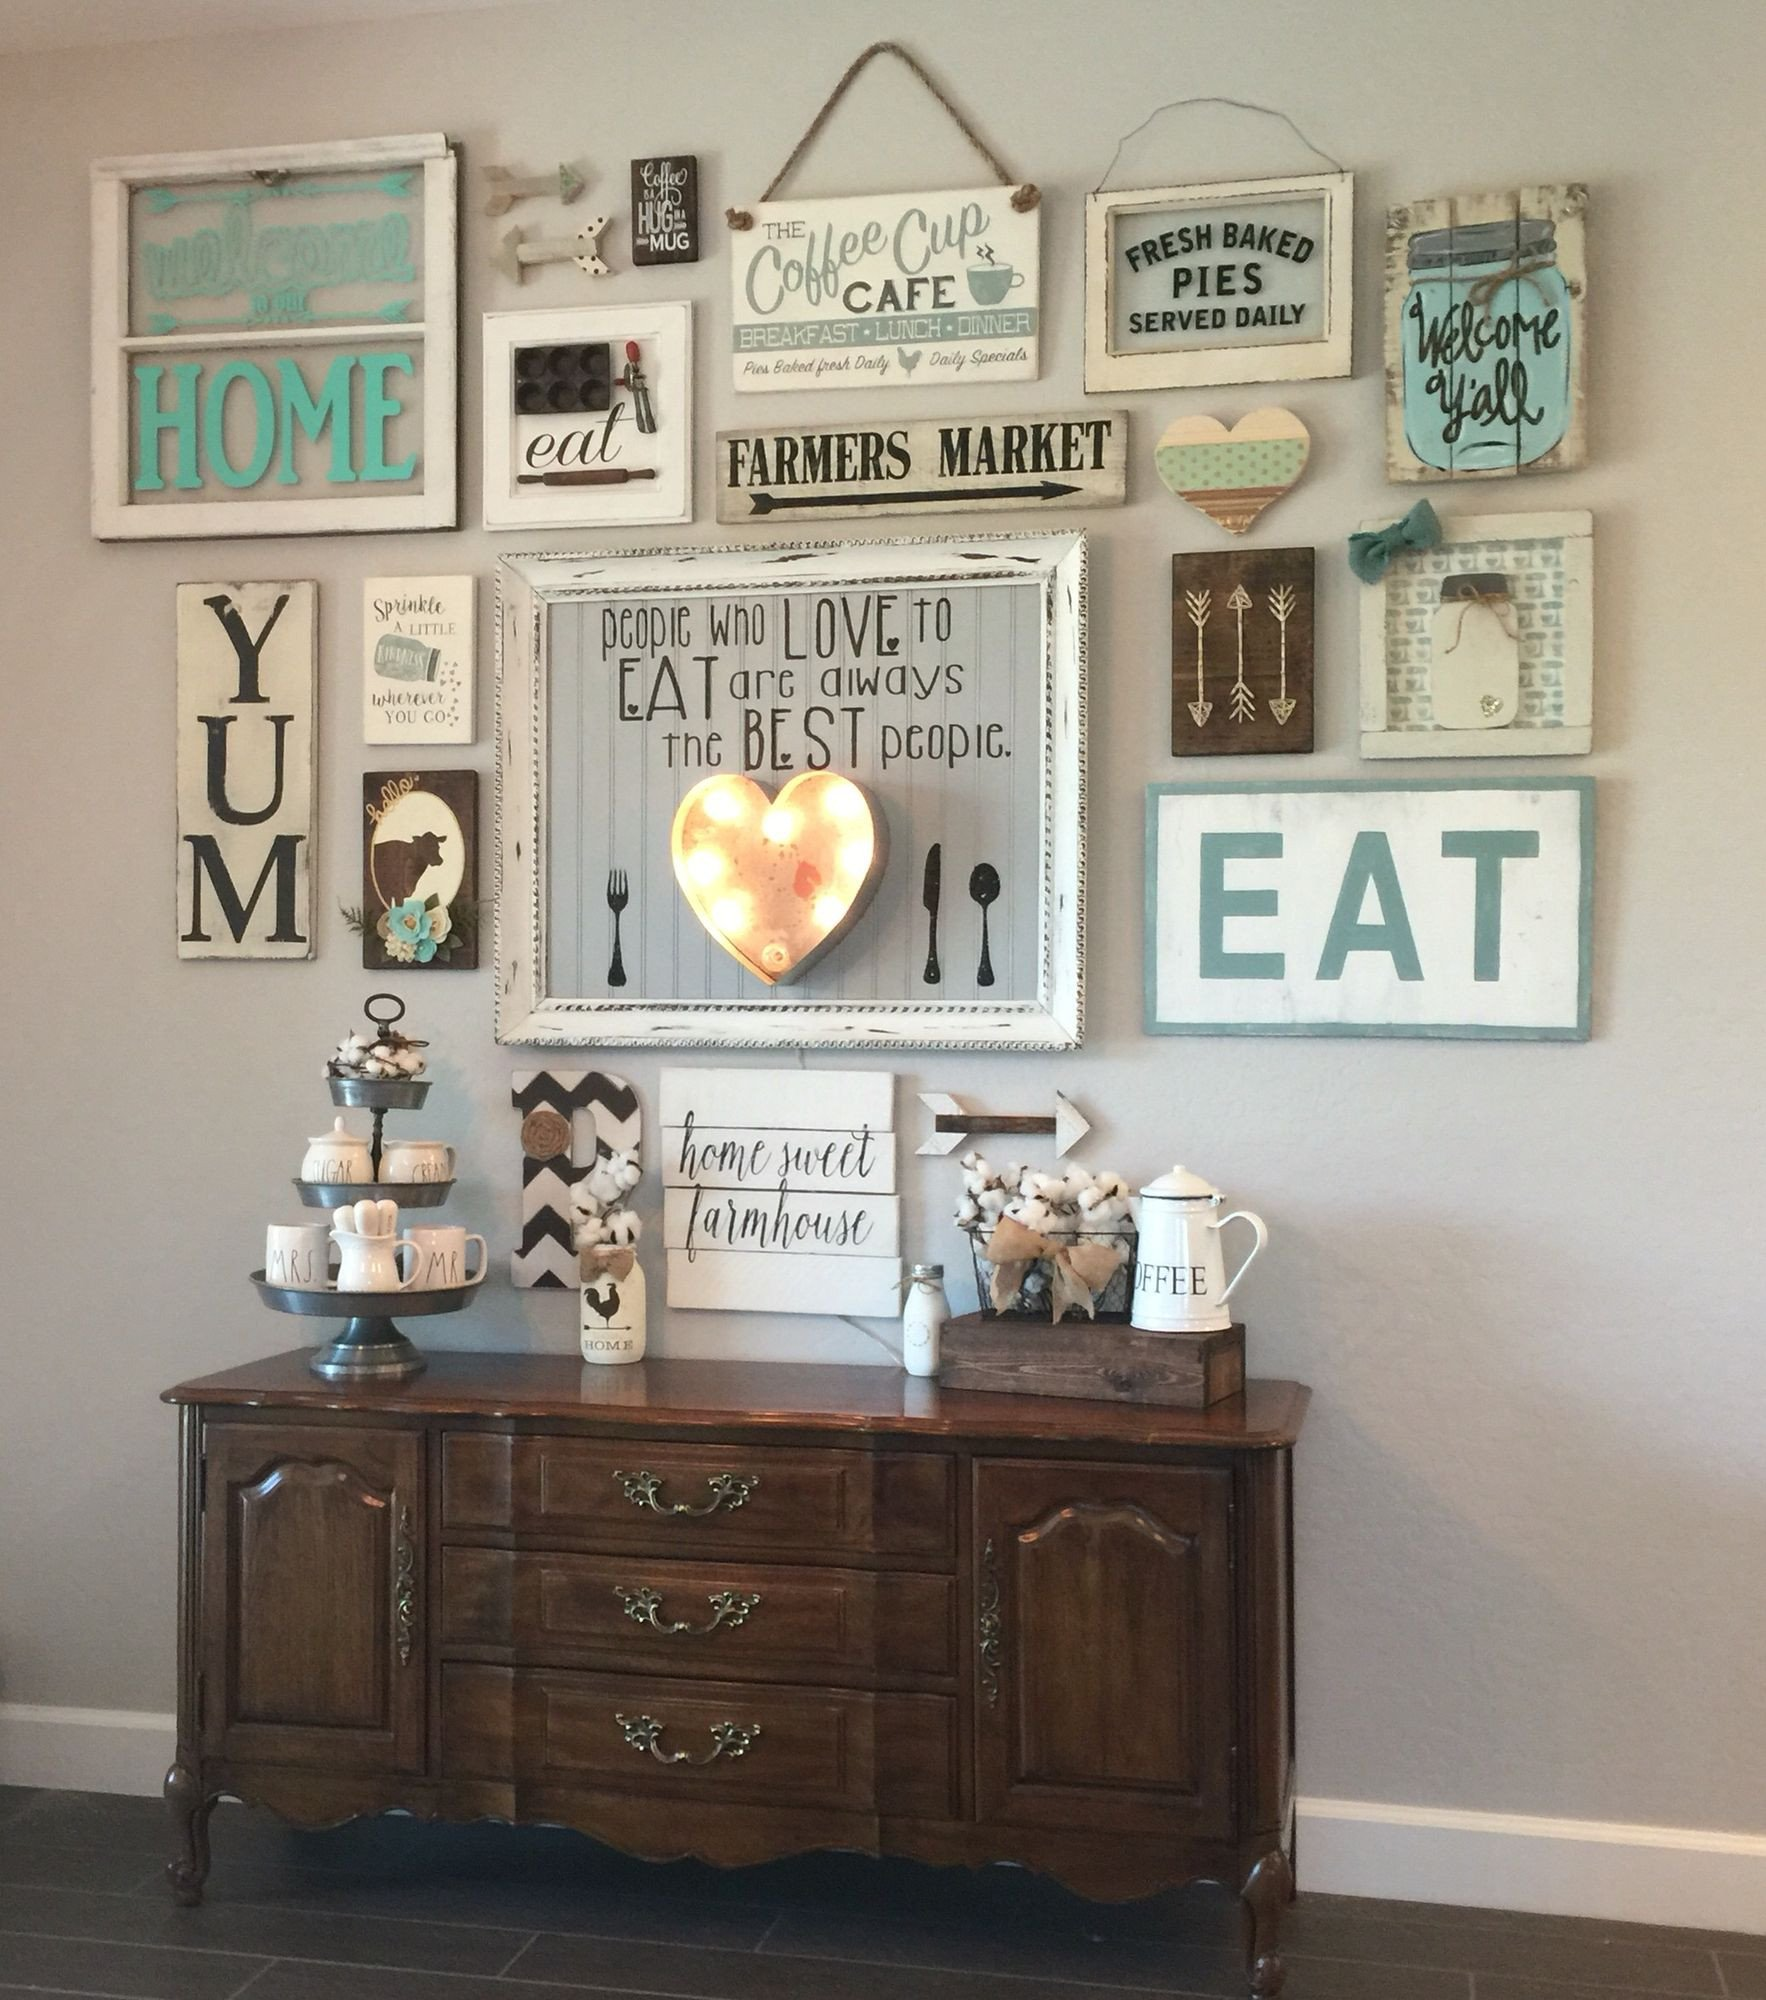 Country Kitchen Wall Decor Ideas Unique My Gallery Wall In Our Kitchen I M Colewifey On Ig E Follow Me and See How I Continue to